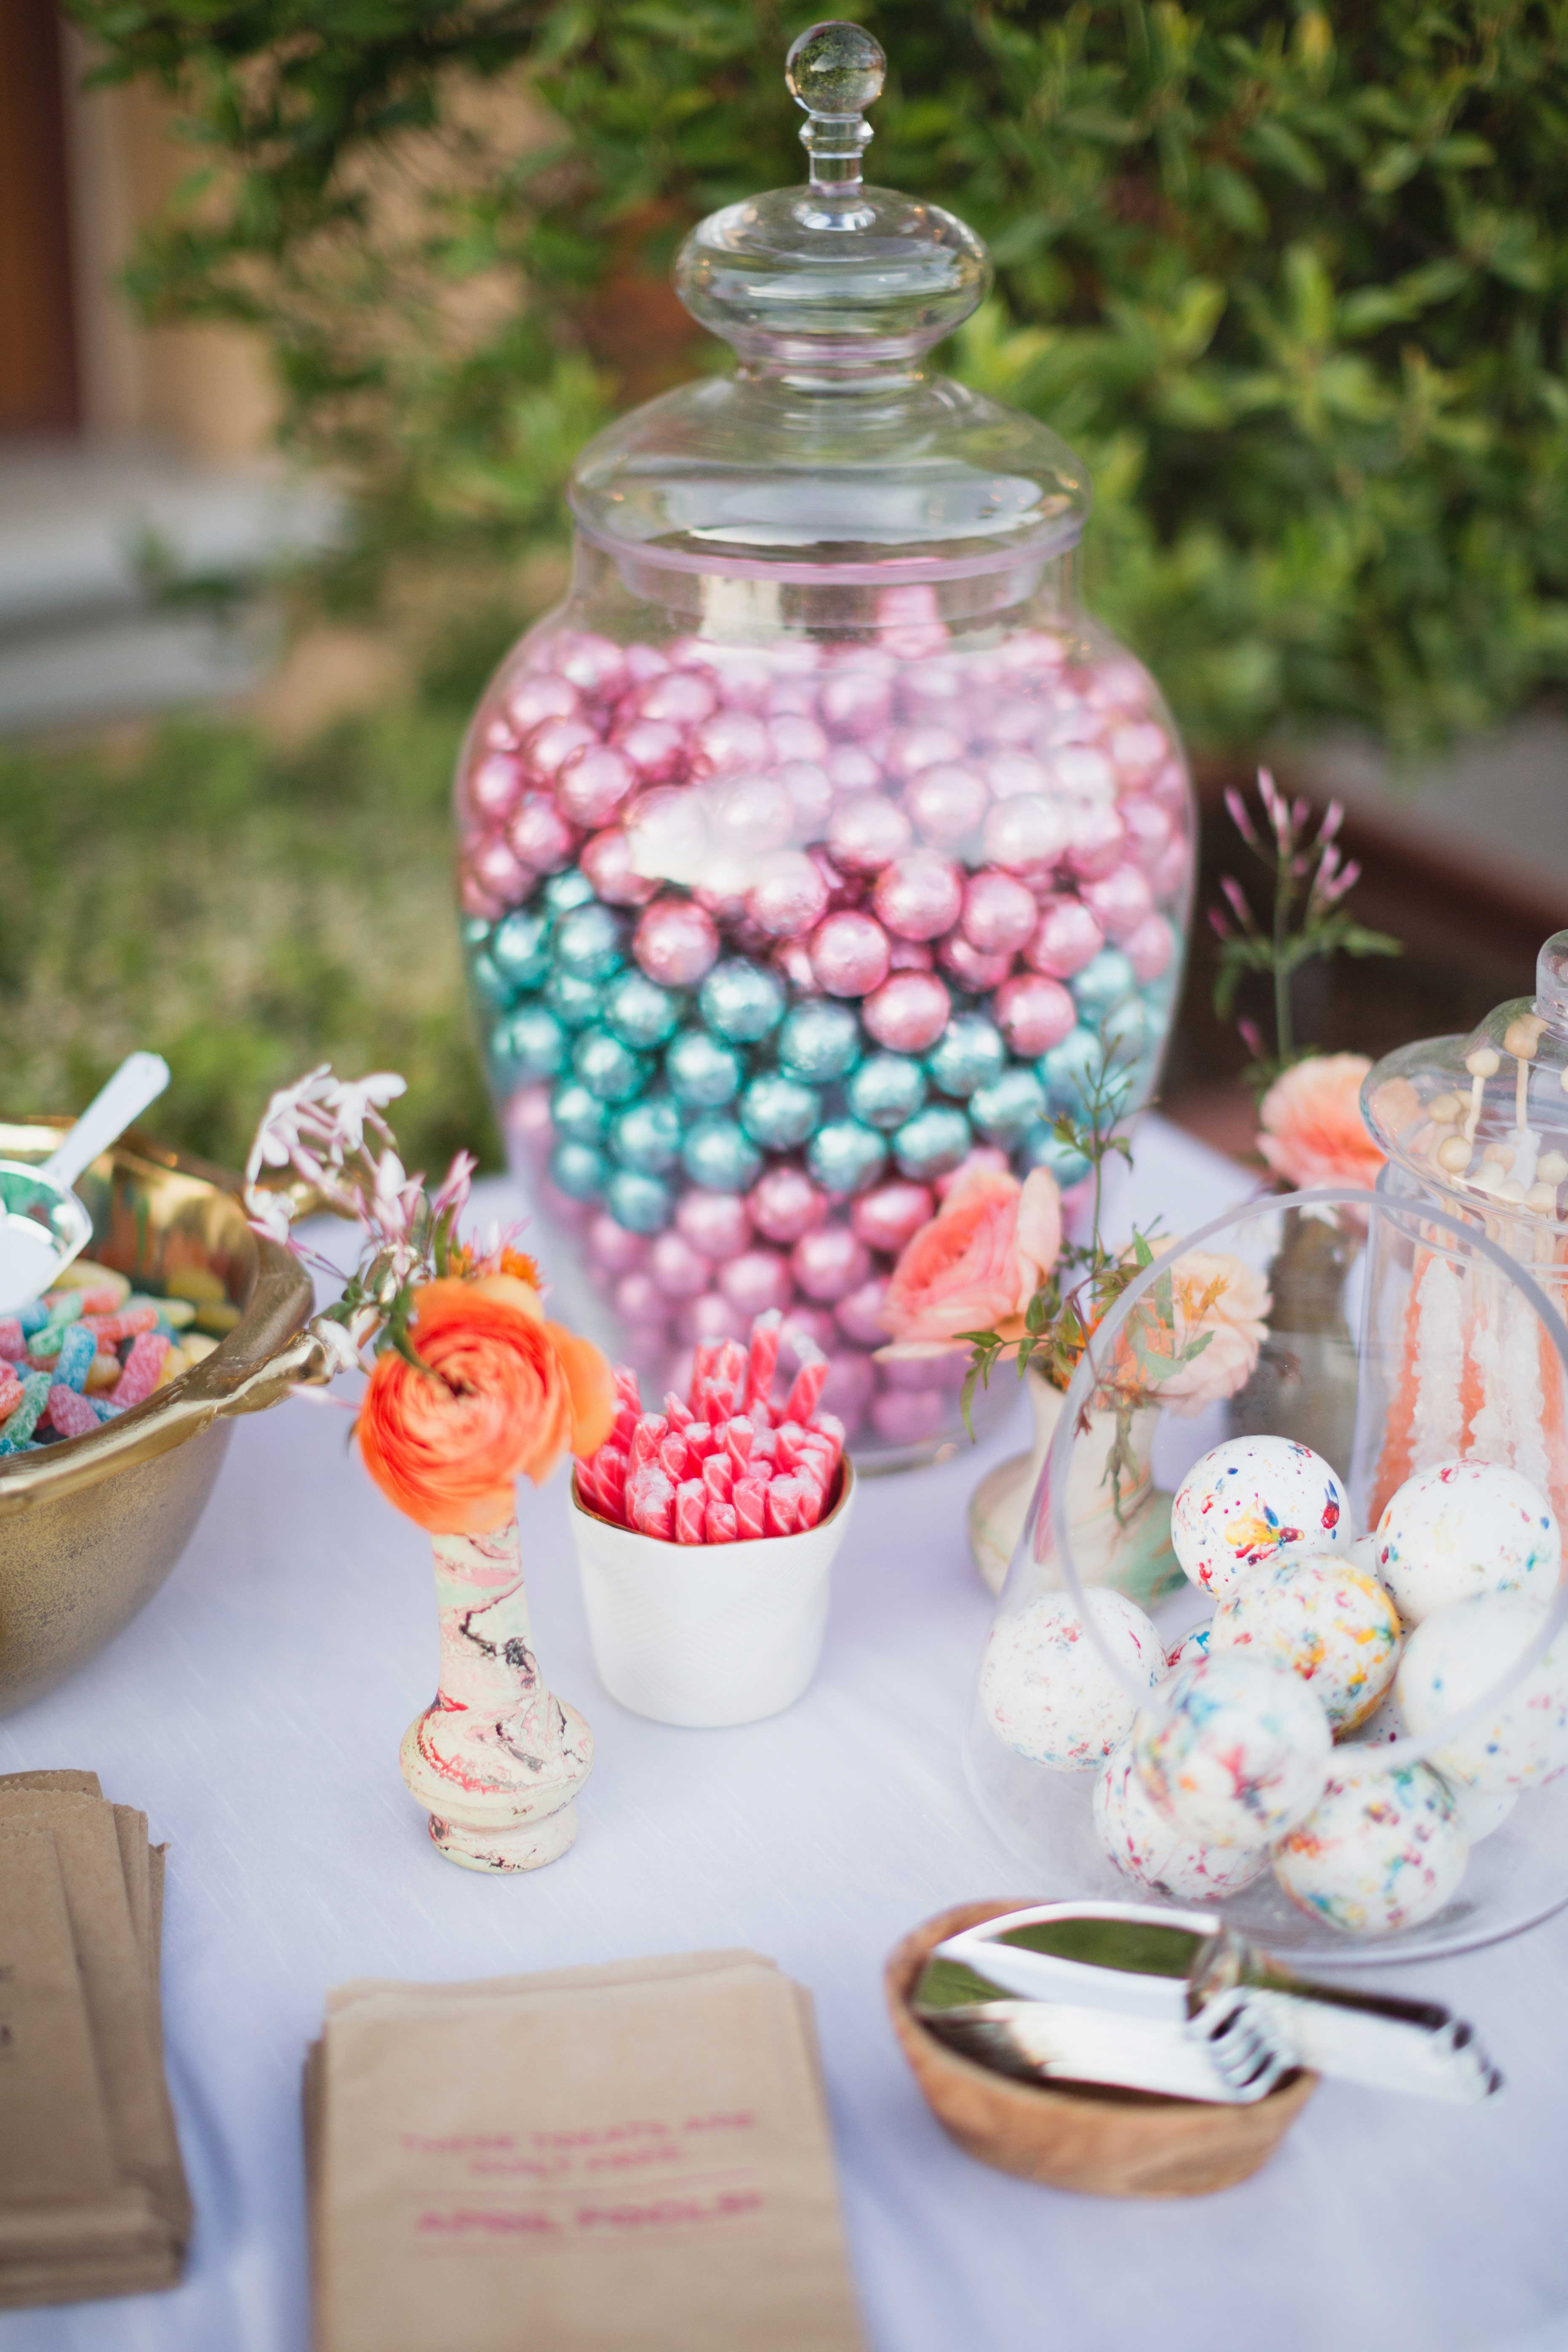 Four Tips for Creating a Modern, Upscale Candy Buffet at Your Wedding